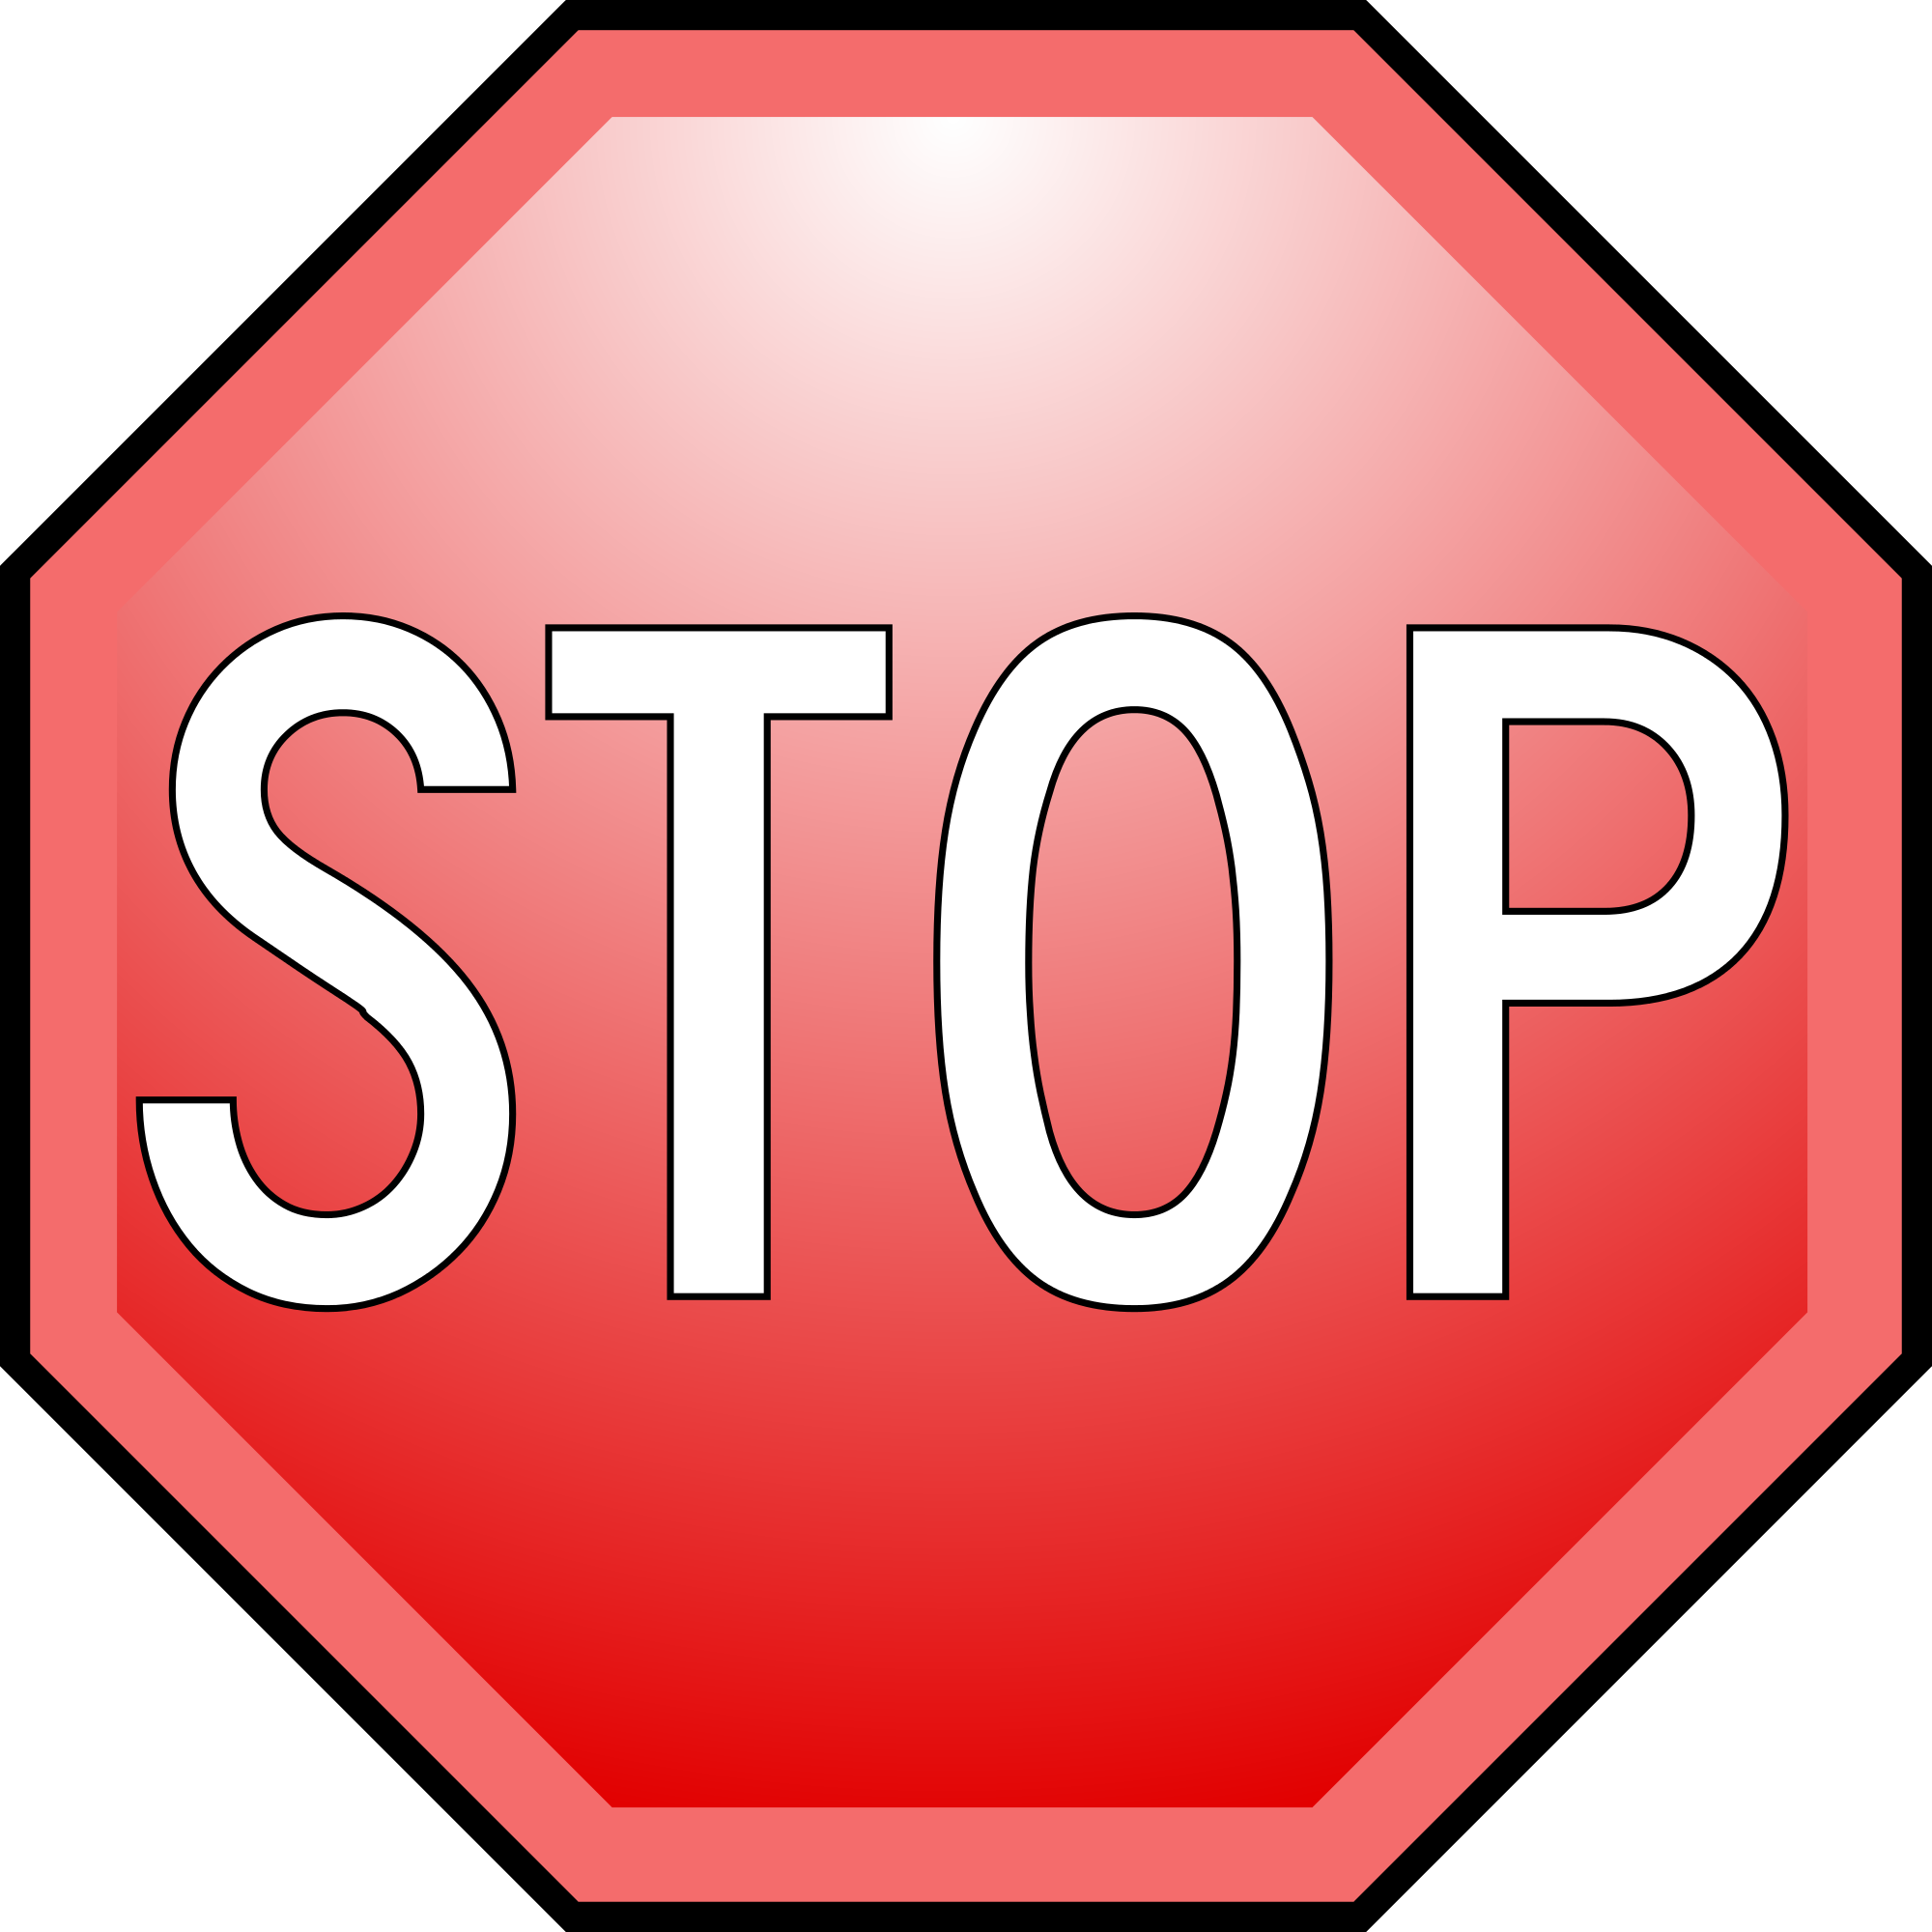 File:Stop hand nuvola alternate text.svg - Wikimedia Commons